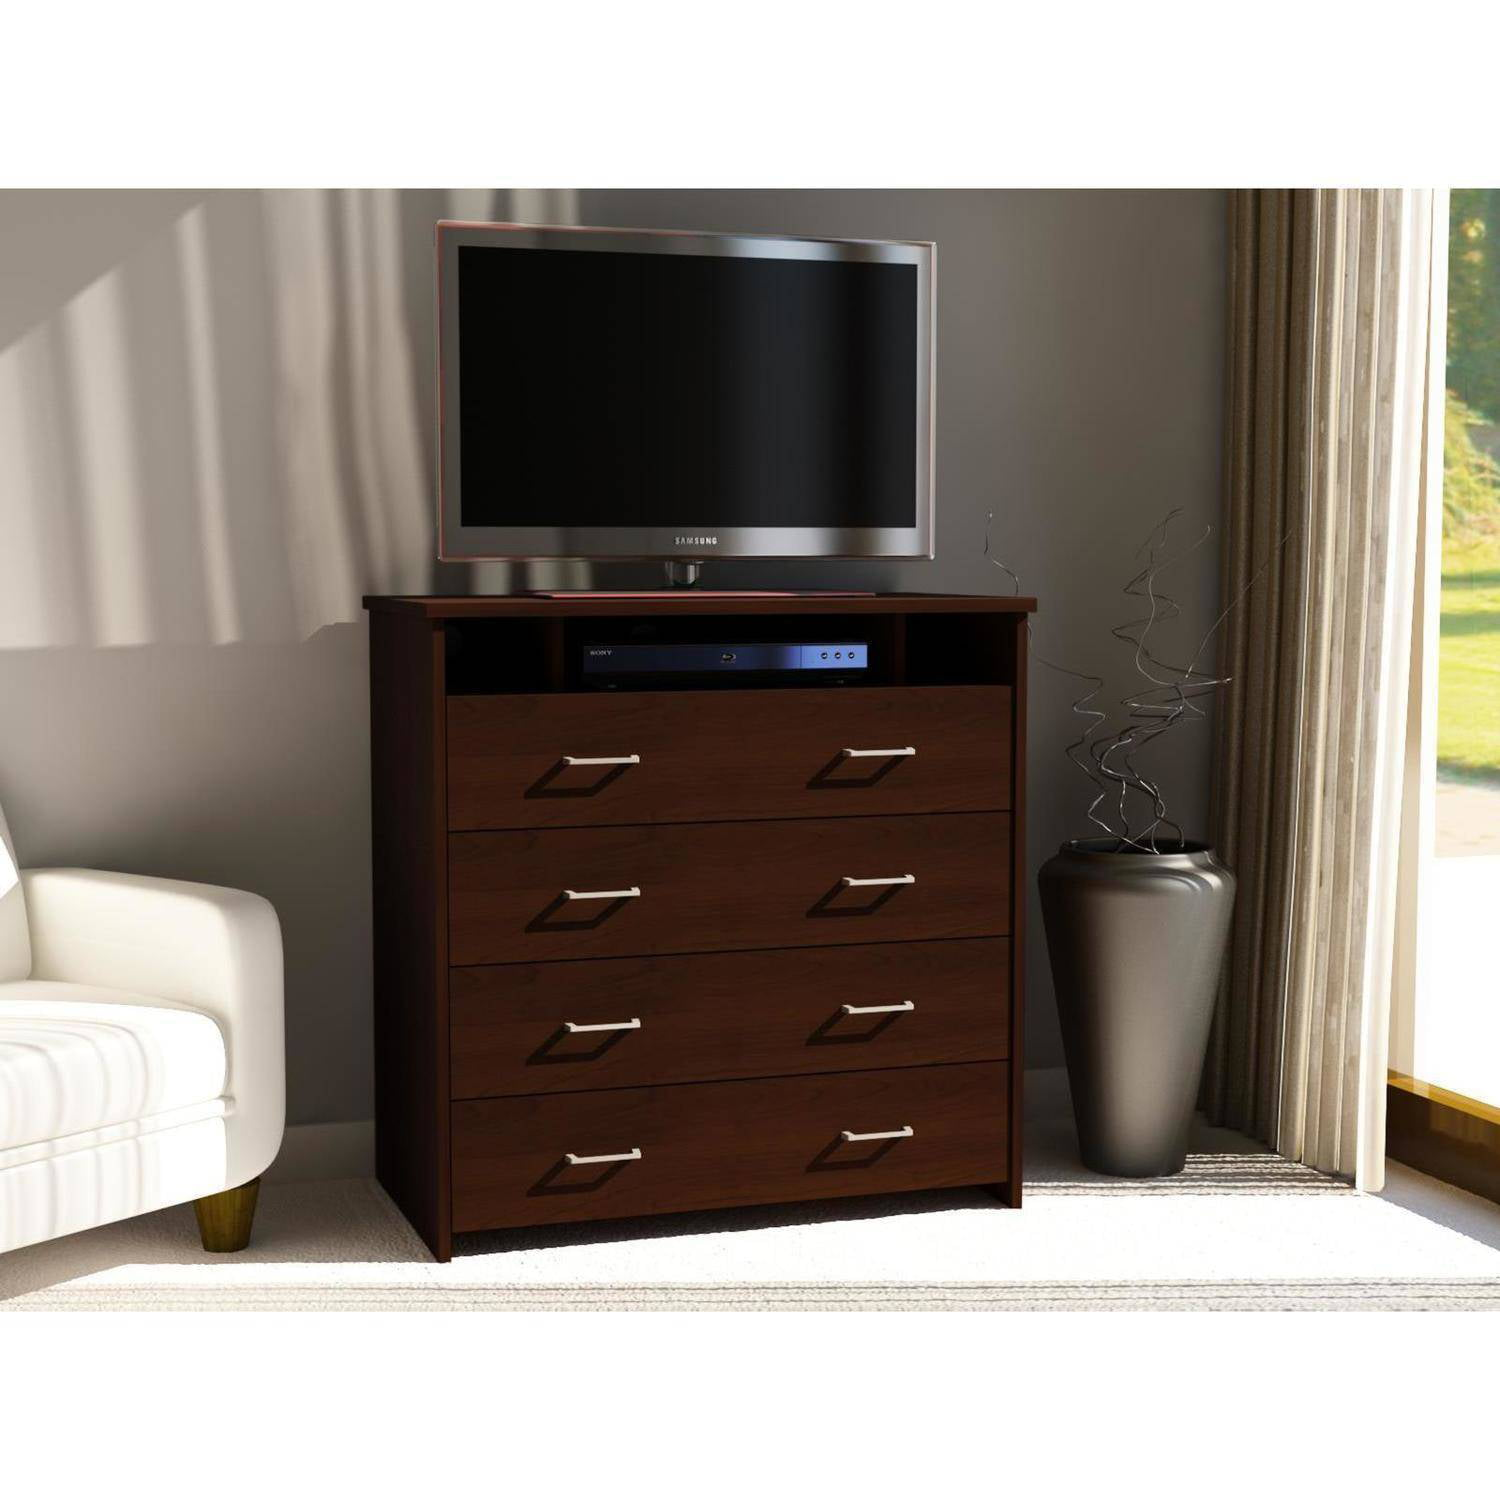 Ameriwood Home 4 Drawer Media Chest, Espresso - Walmart.com